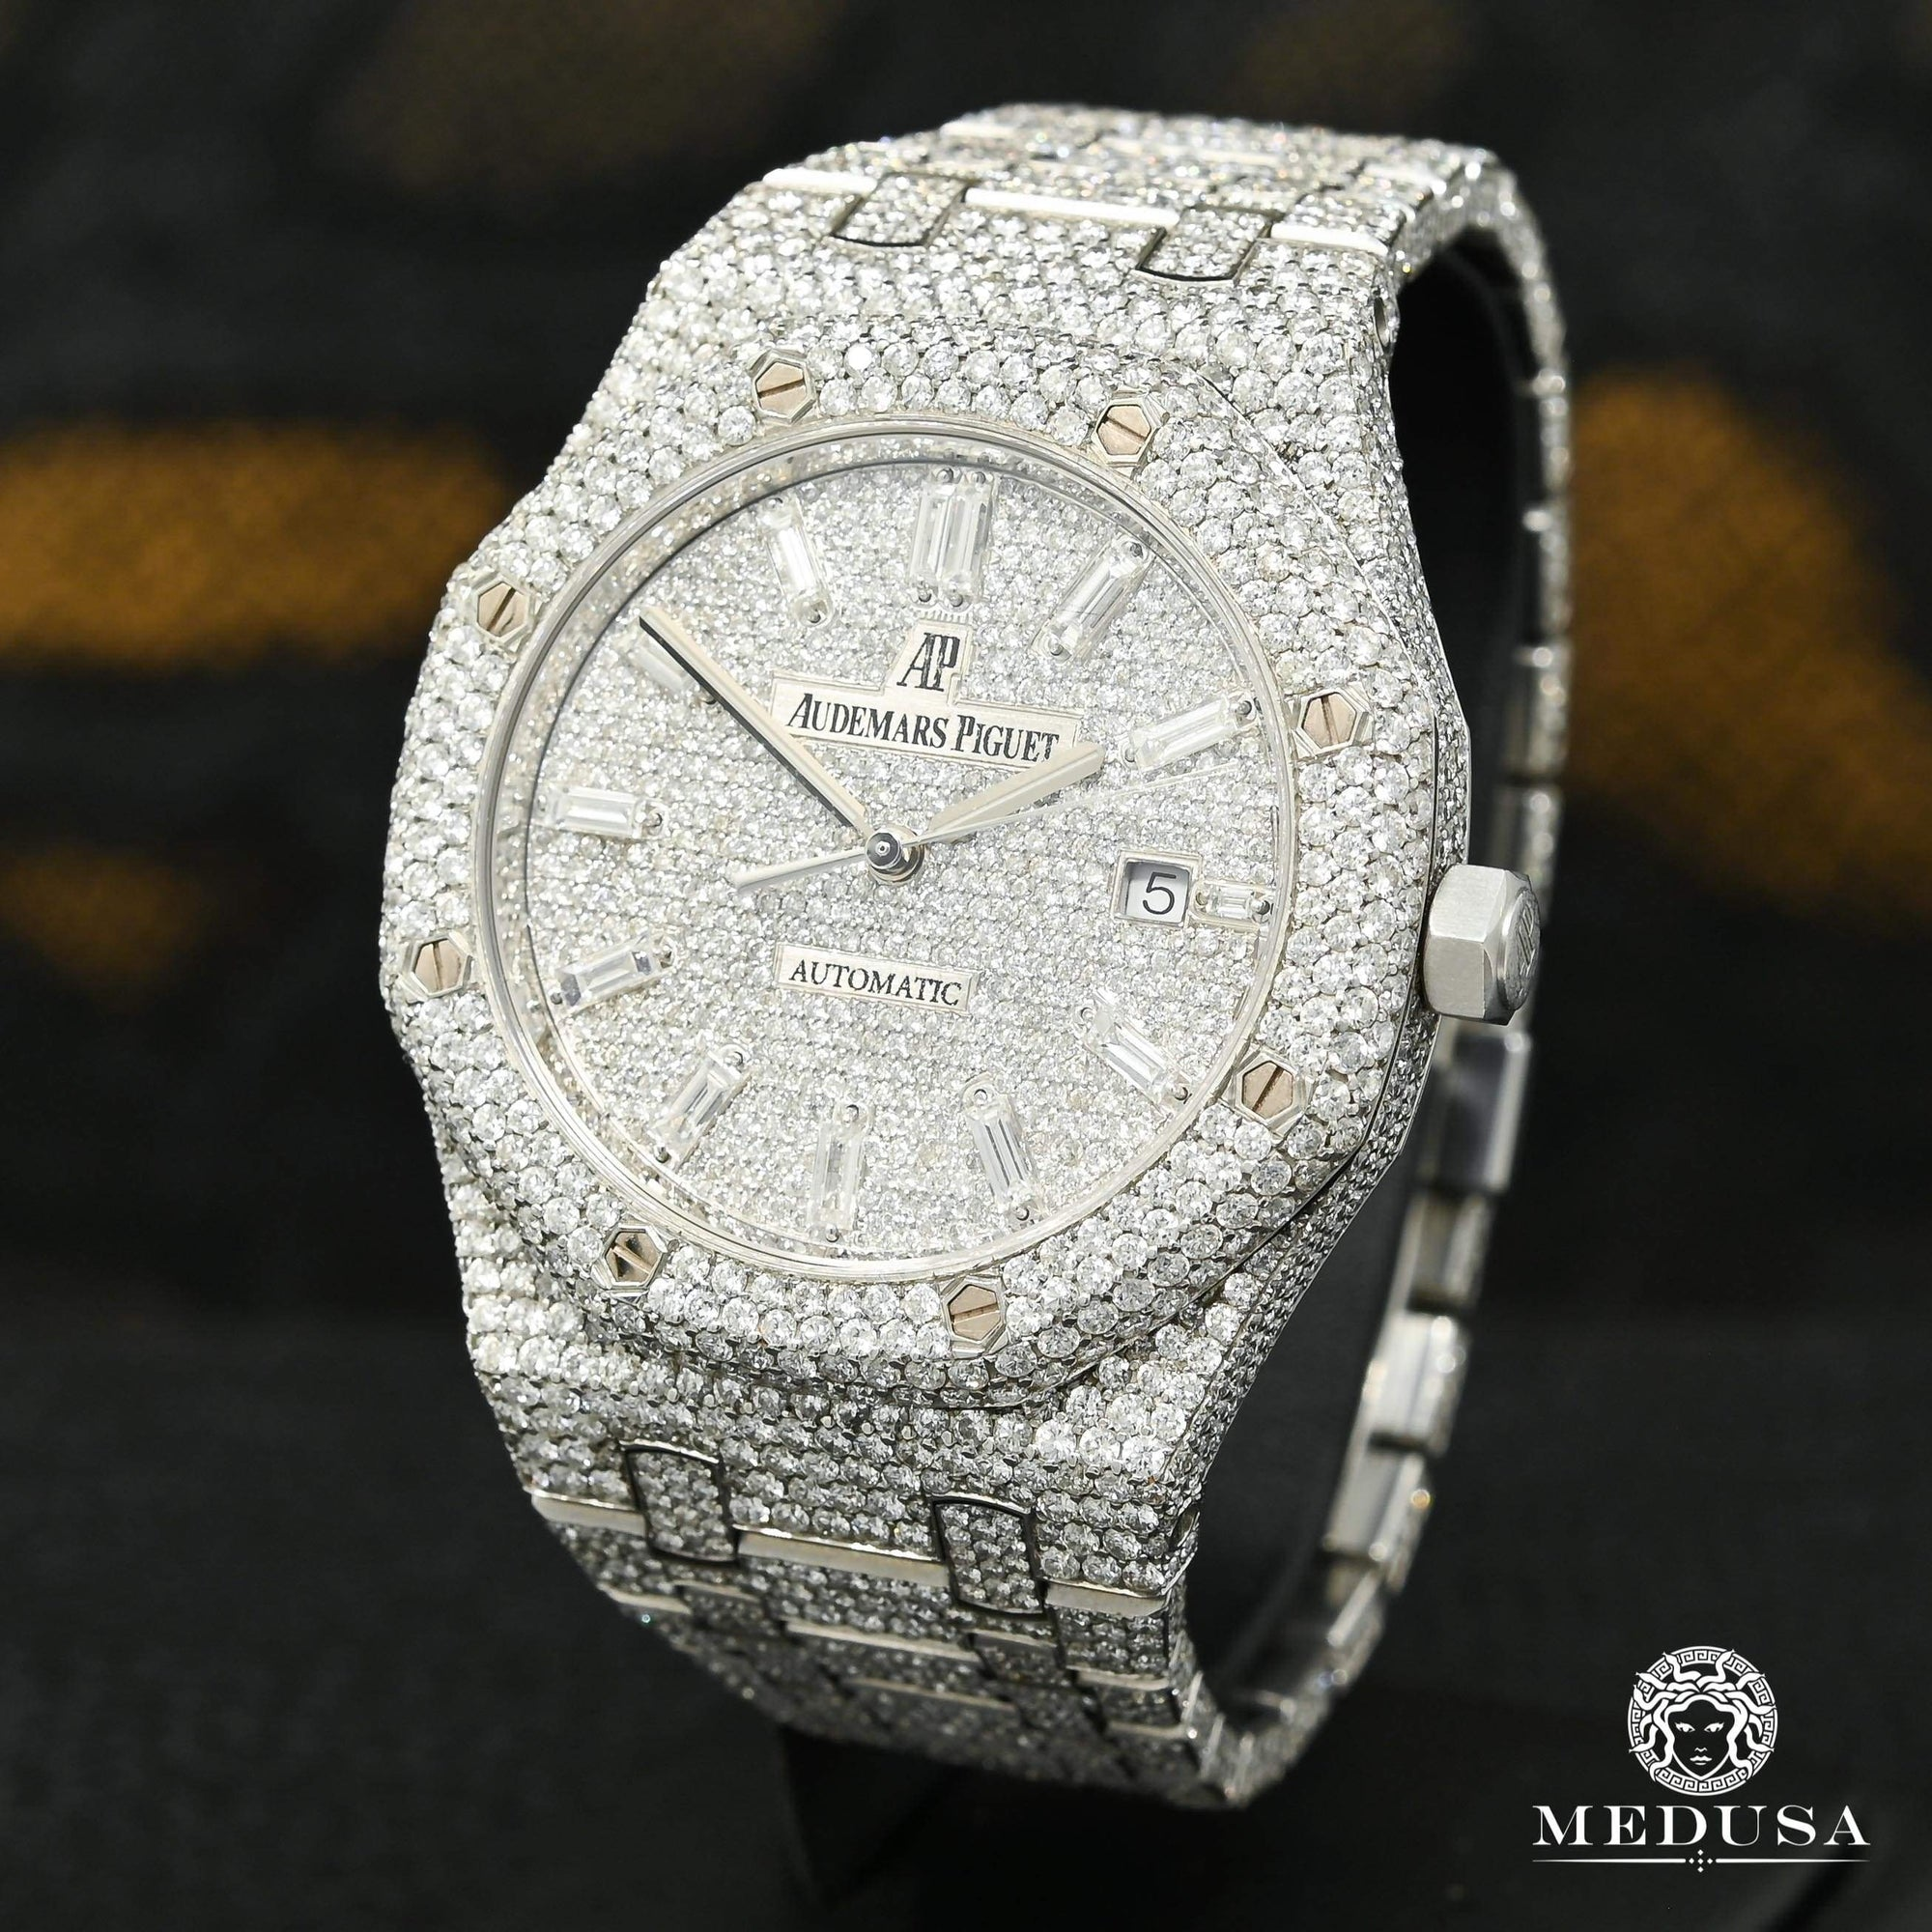 Montre Audemars Piguet | Montre Homme 41mm Audemars Piguet Royal Oak - Baguette Full Iced Stainless